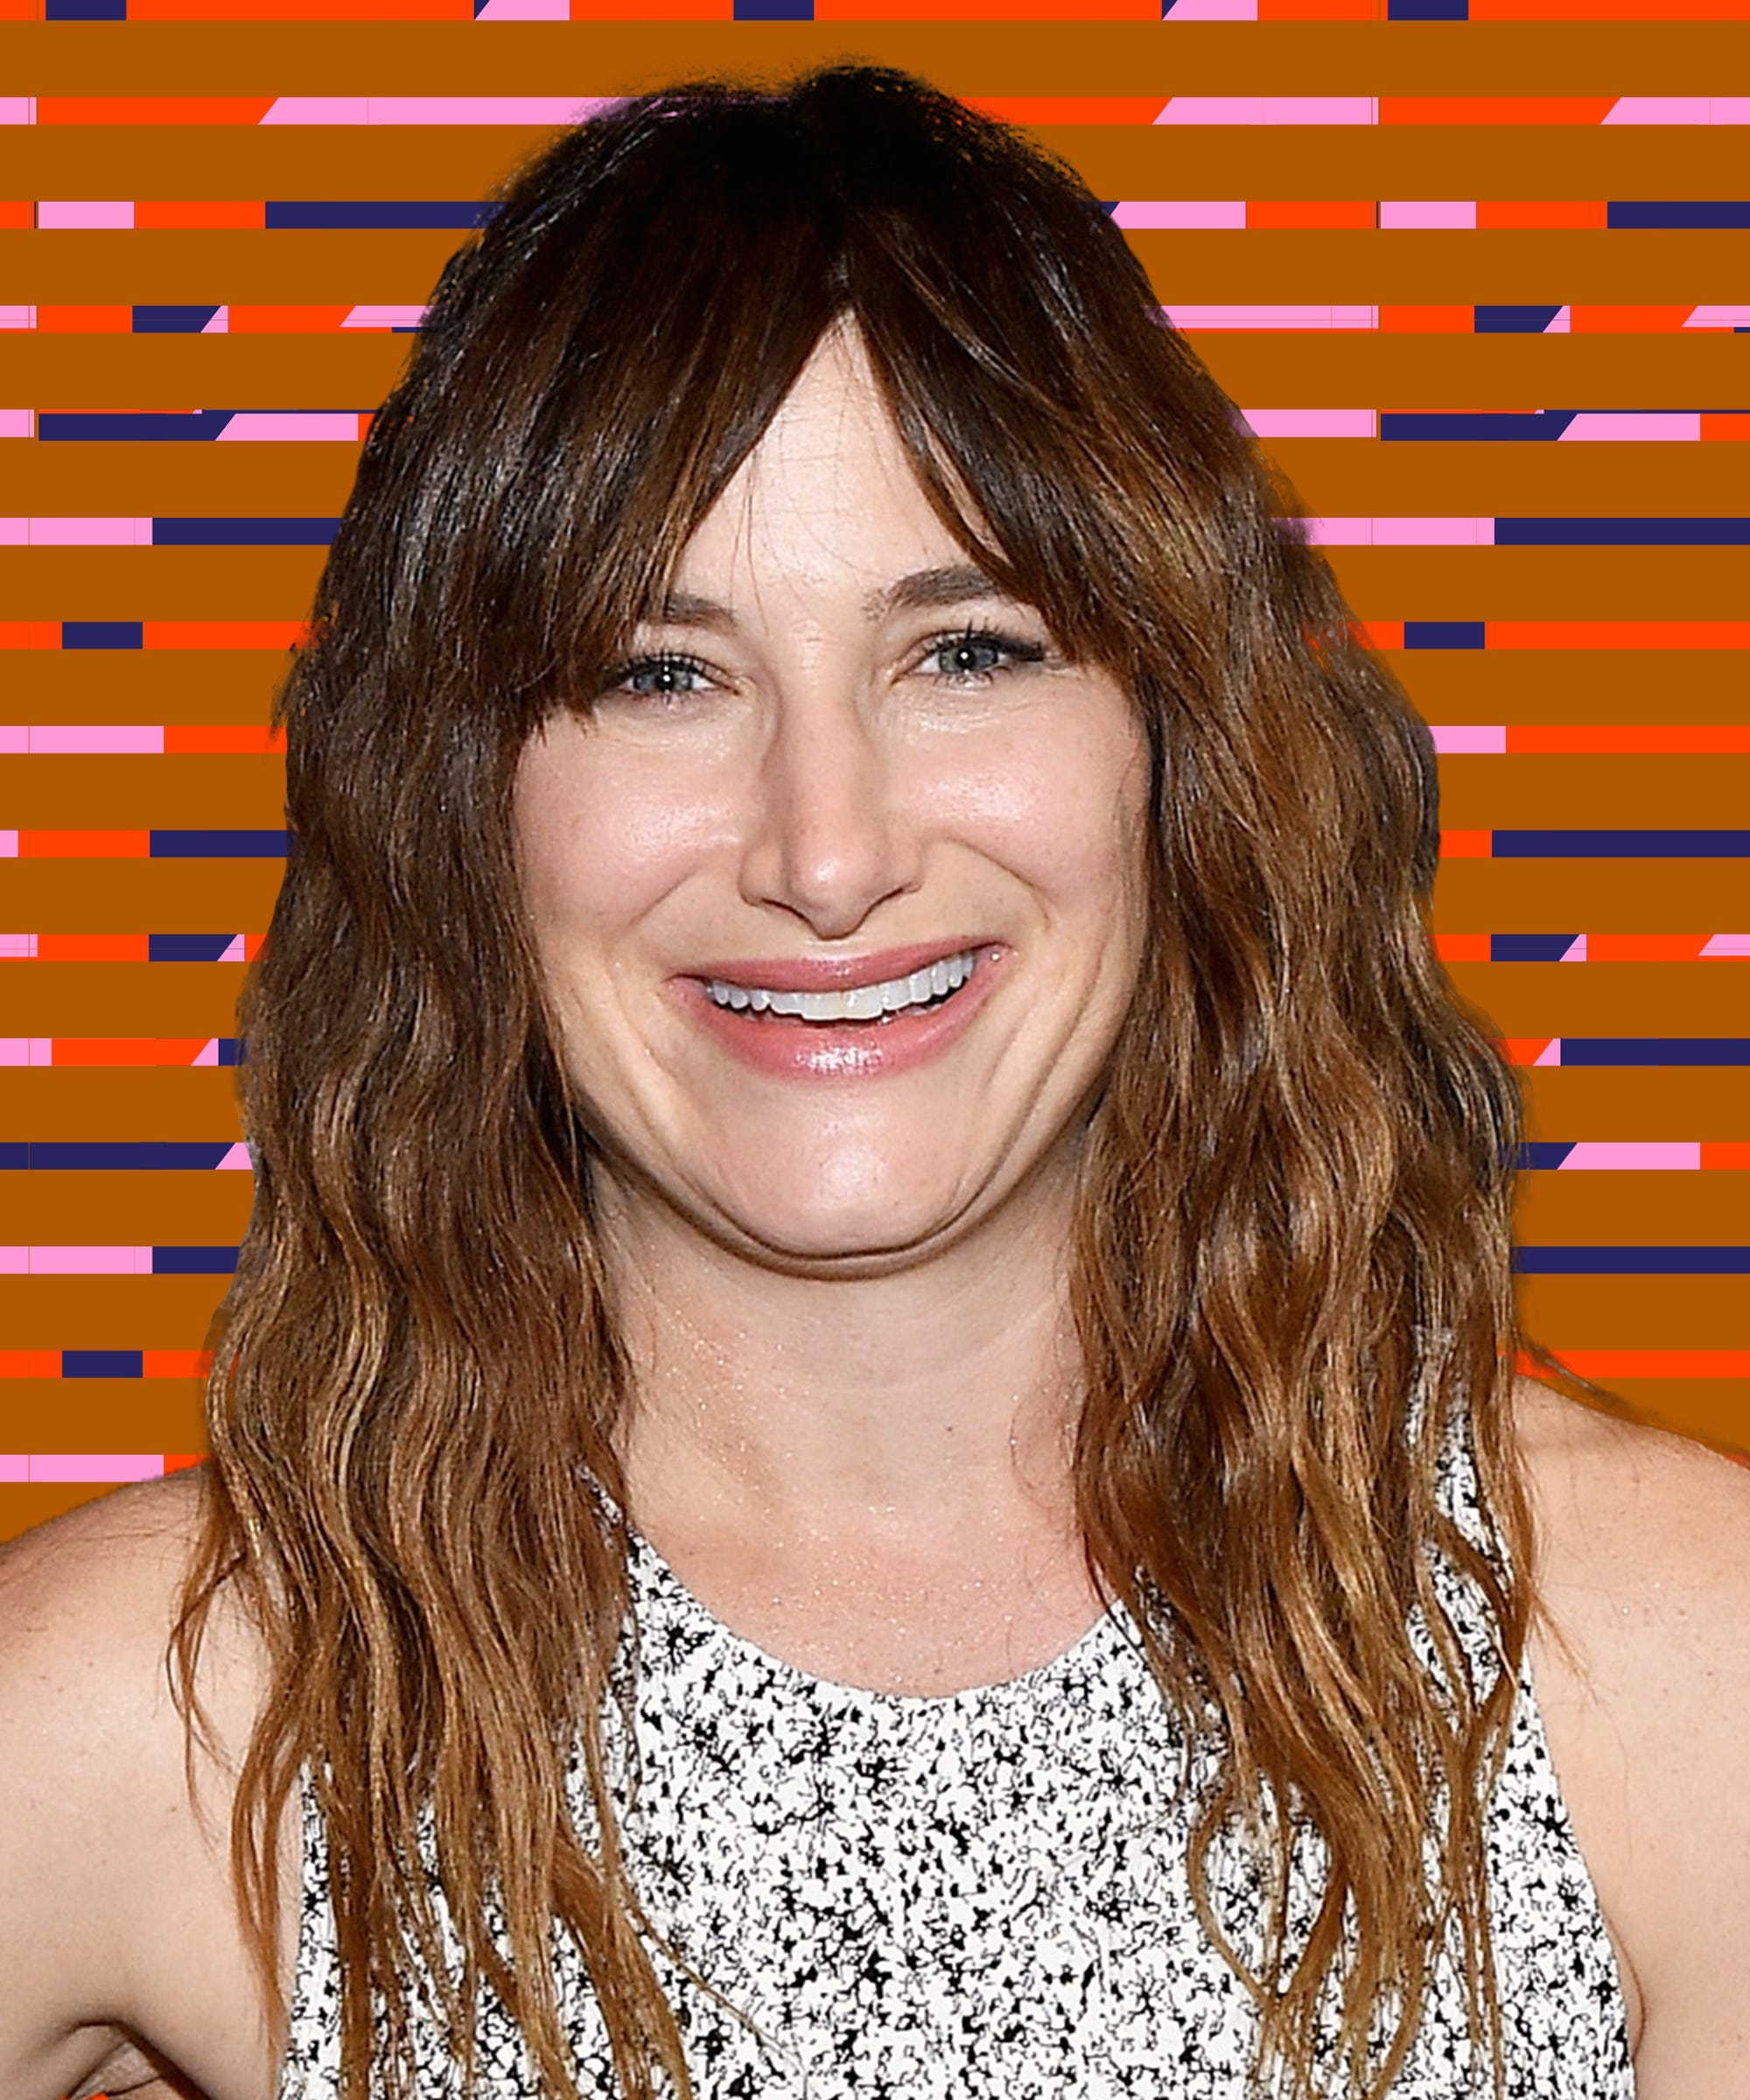 Kathryn Hahn nude (82 foto and video), Ass, Leaked, Feet, bra 2018